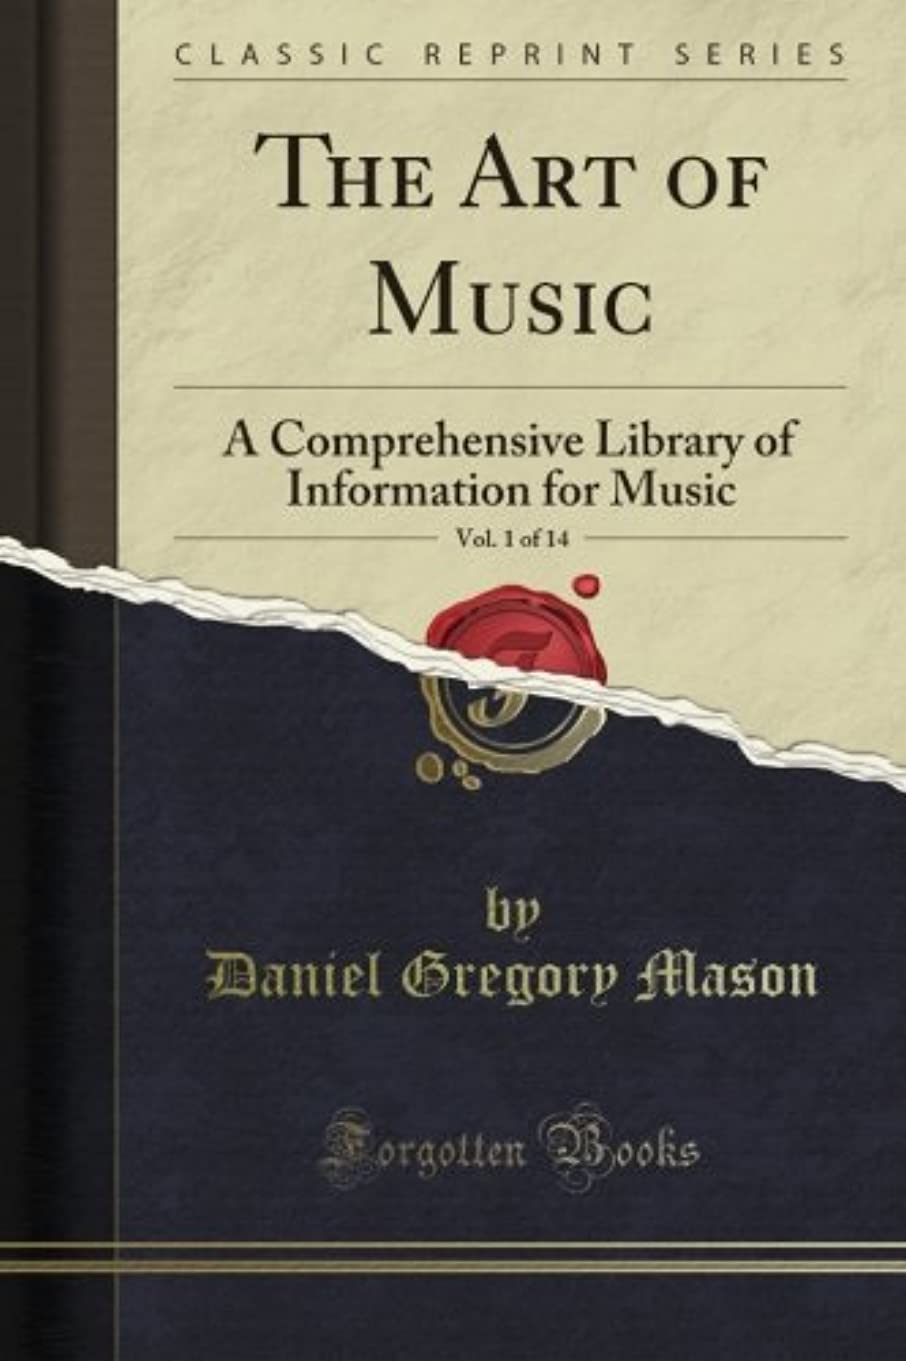 ボルトプラグ兵隊The Art of Music: A Comprehensive Library of Information for Music, Vol. 1 of 14 (Classic Reprint)